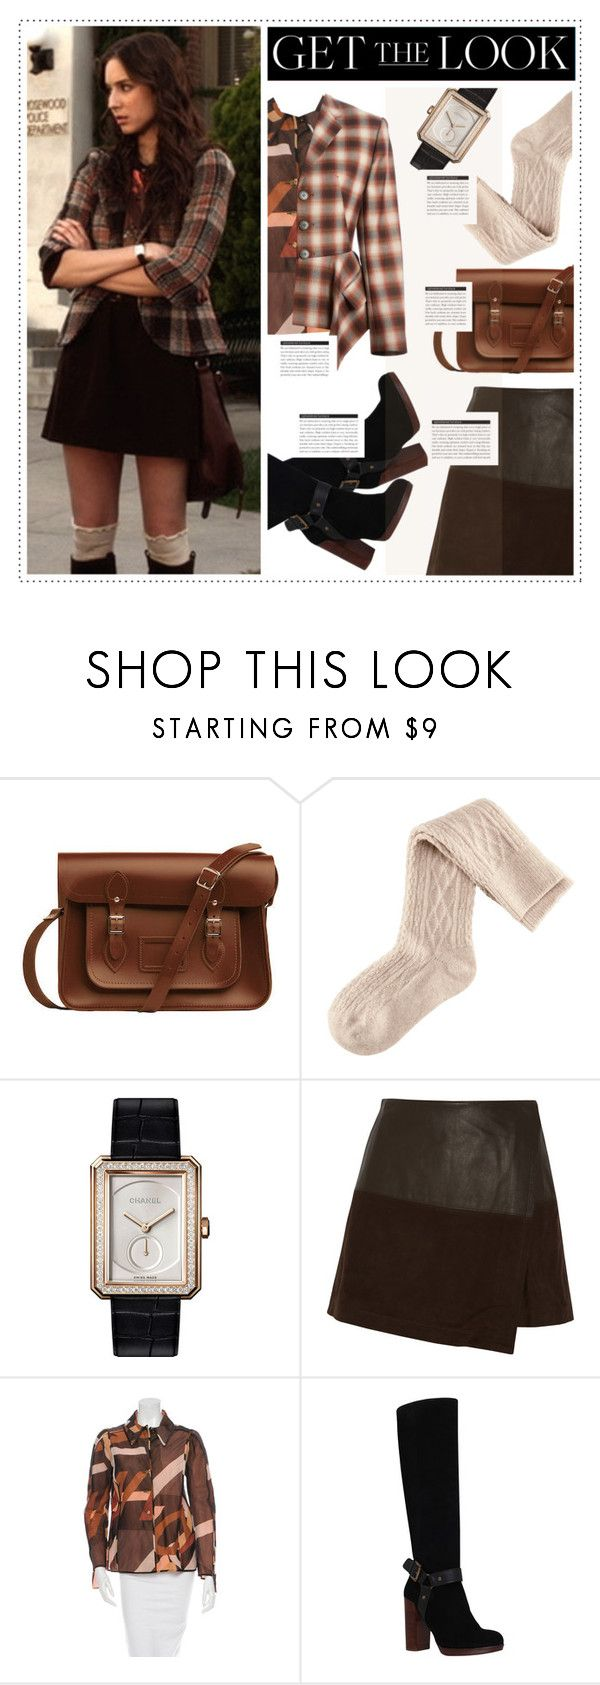 """""""Get The Look: Spencer Hastings #4"""" by fran-tasy ❤ liked on Polyvore featuring The Cambridge Satchel Company, H&M, Chanel, Alice + Olivia, Fendi, KG Kurt Geiger, Jean-Paul Gaultier, BoConcept, GetTheLook and TVStyle"""